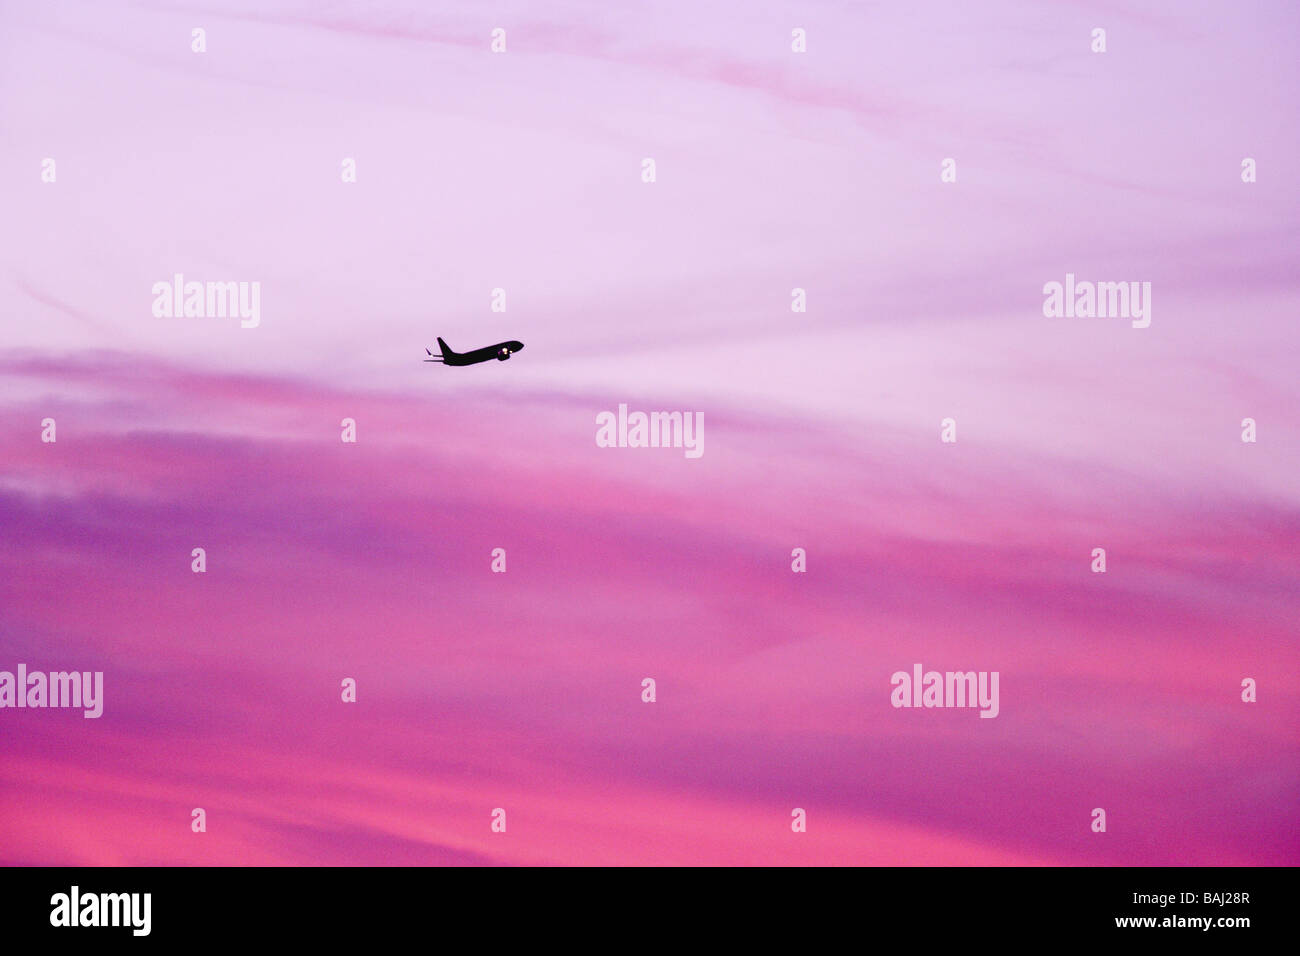 Commercial Aviation, Aircraft in flight. - Stock Image